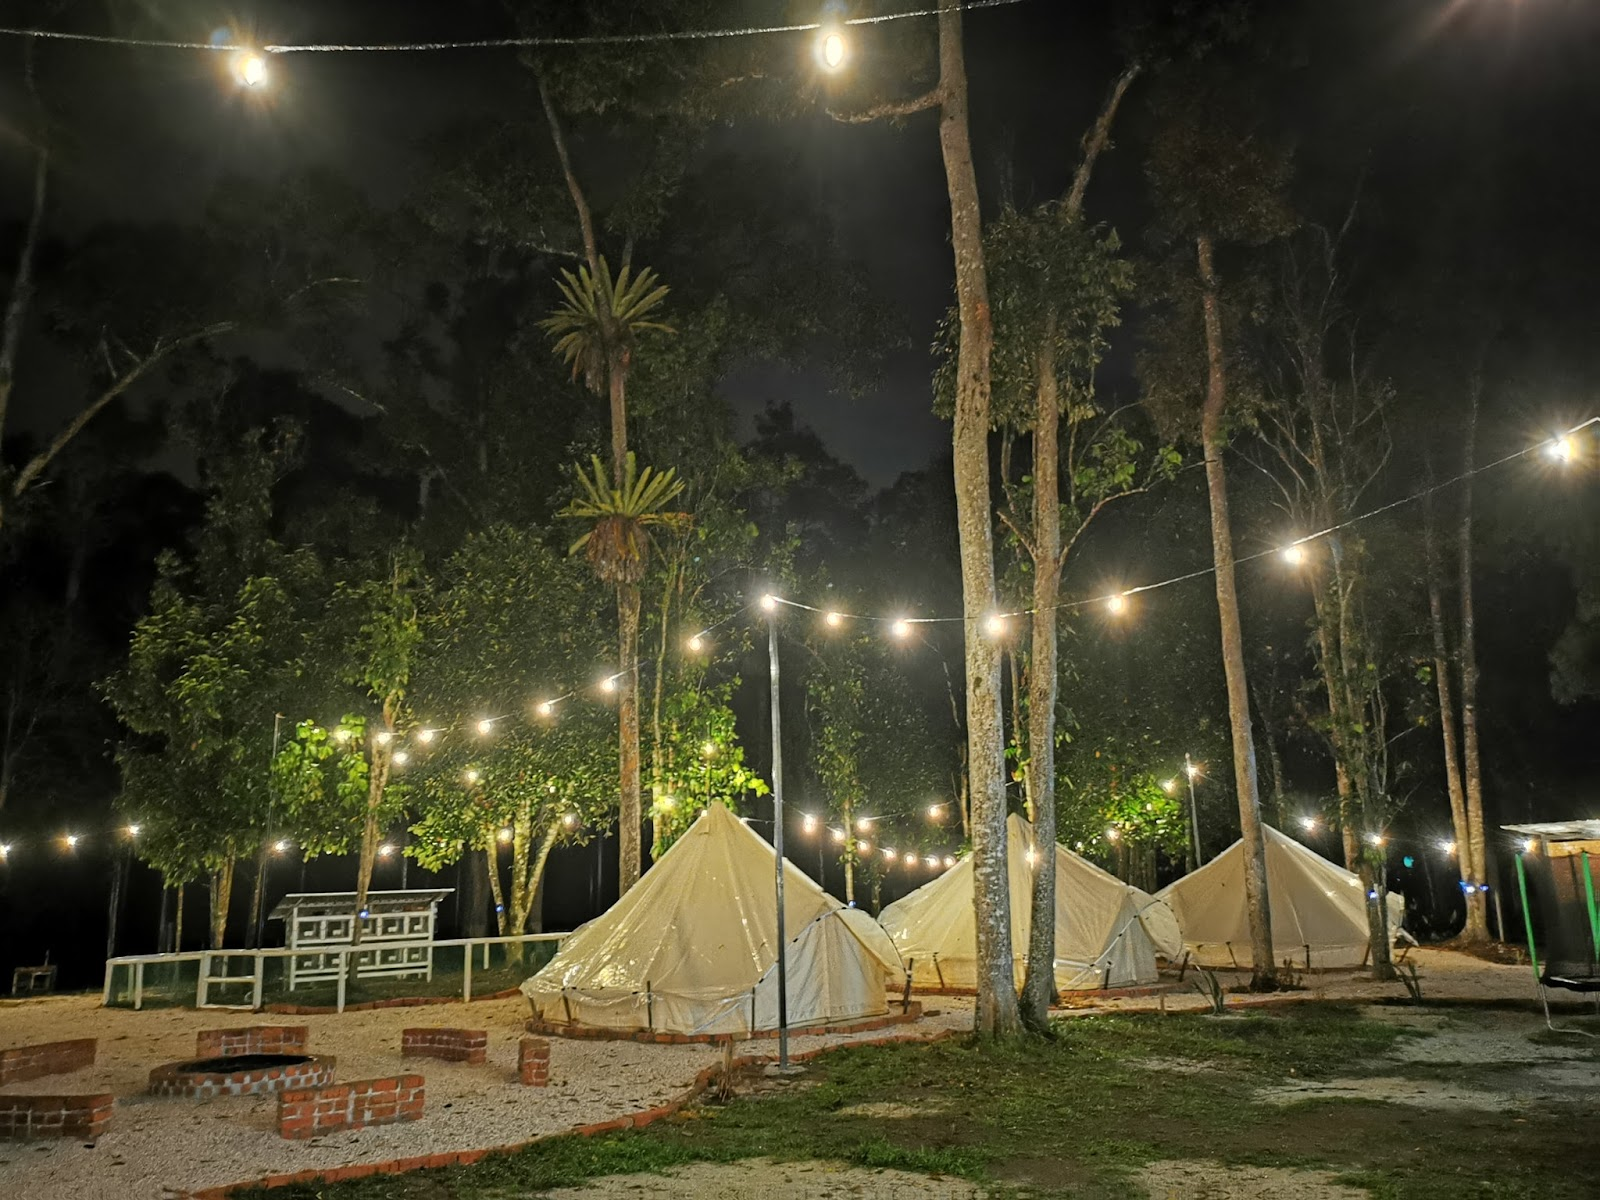 kl camping site